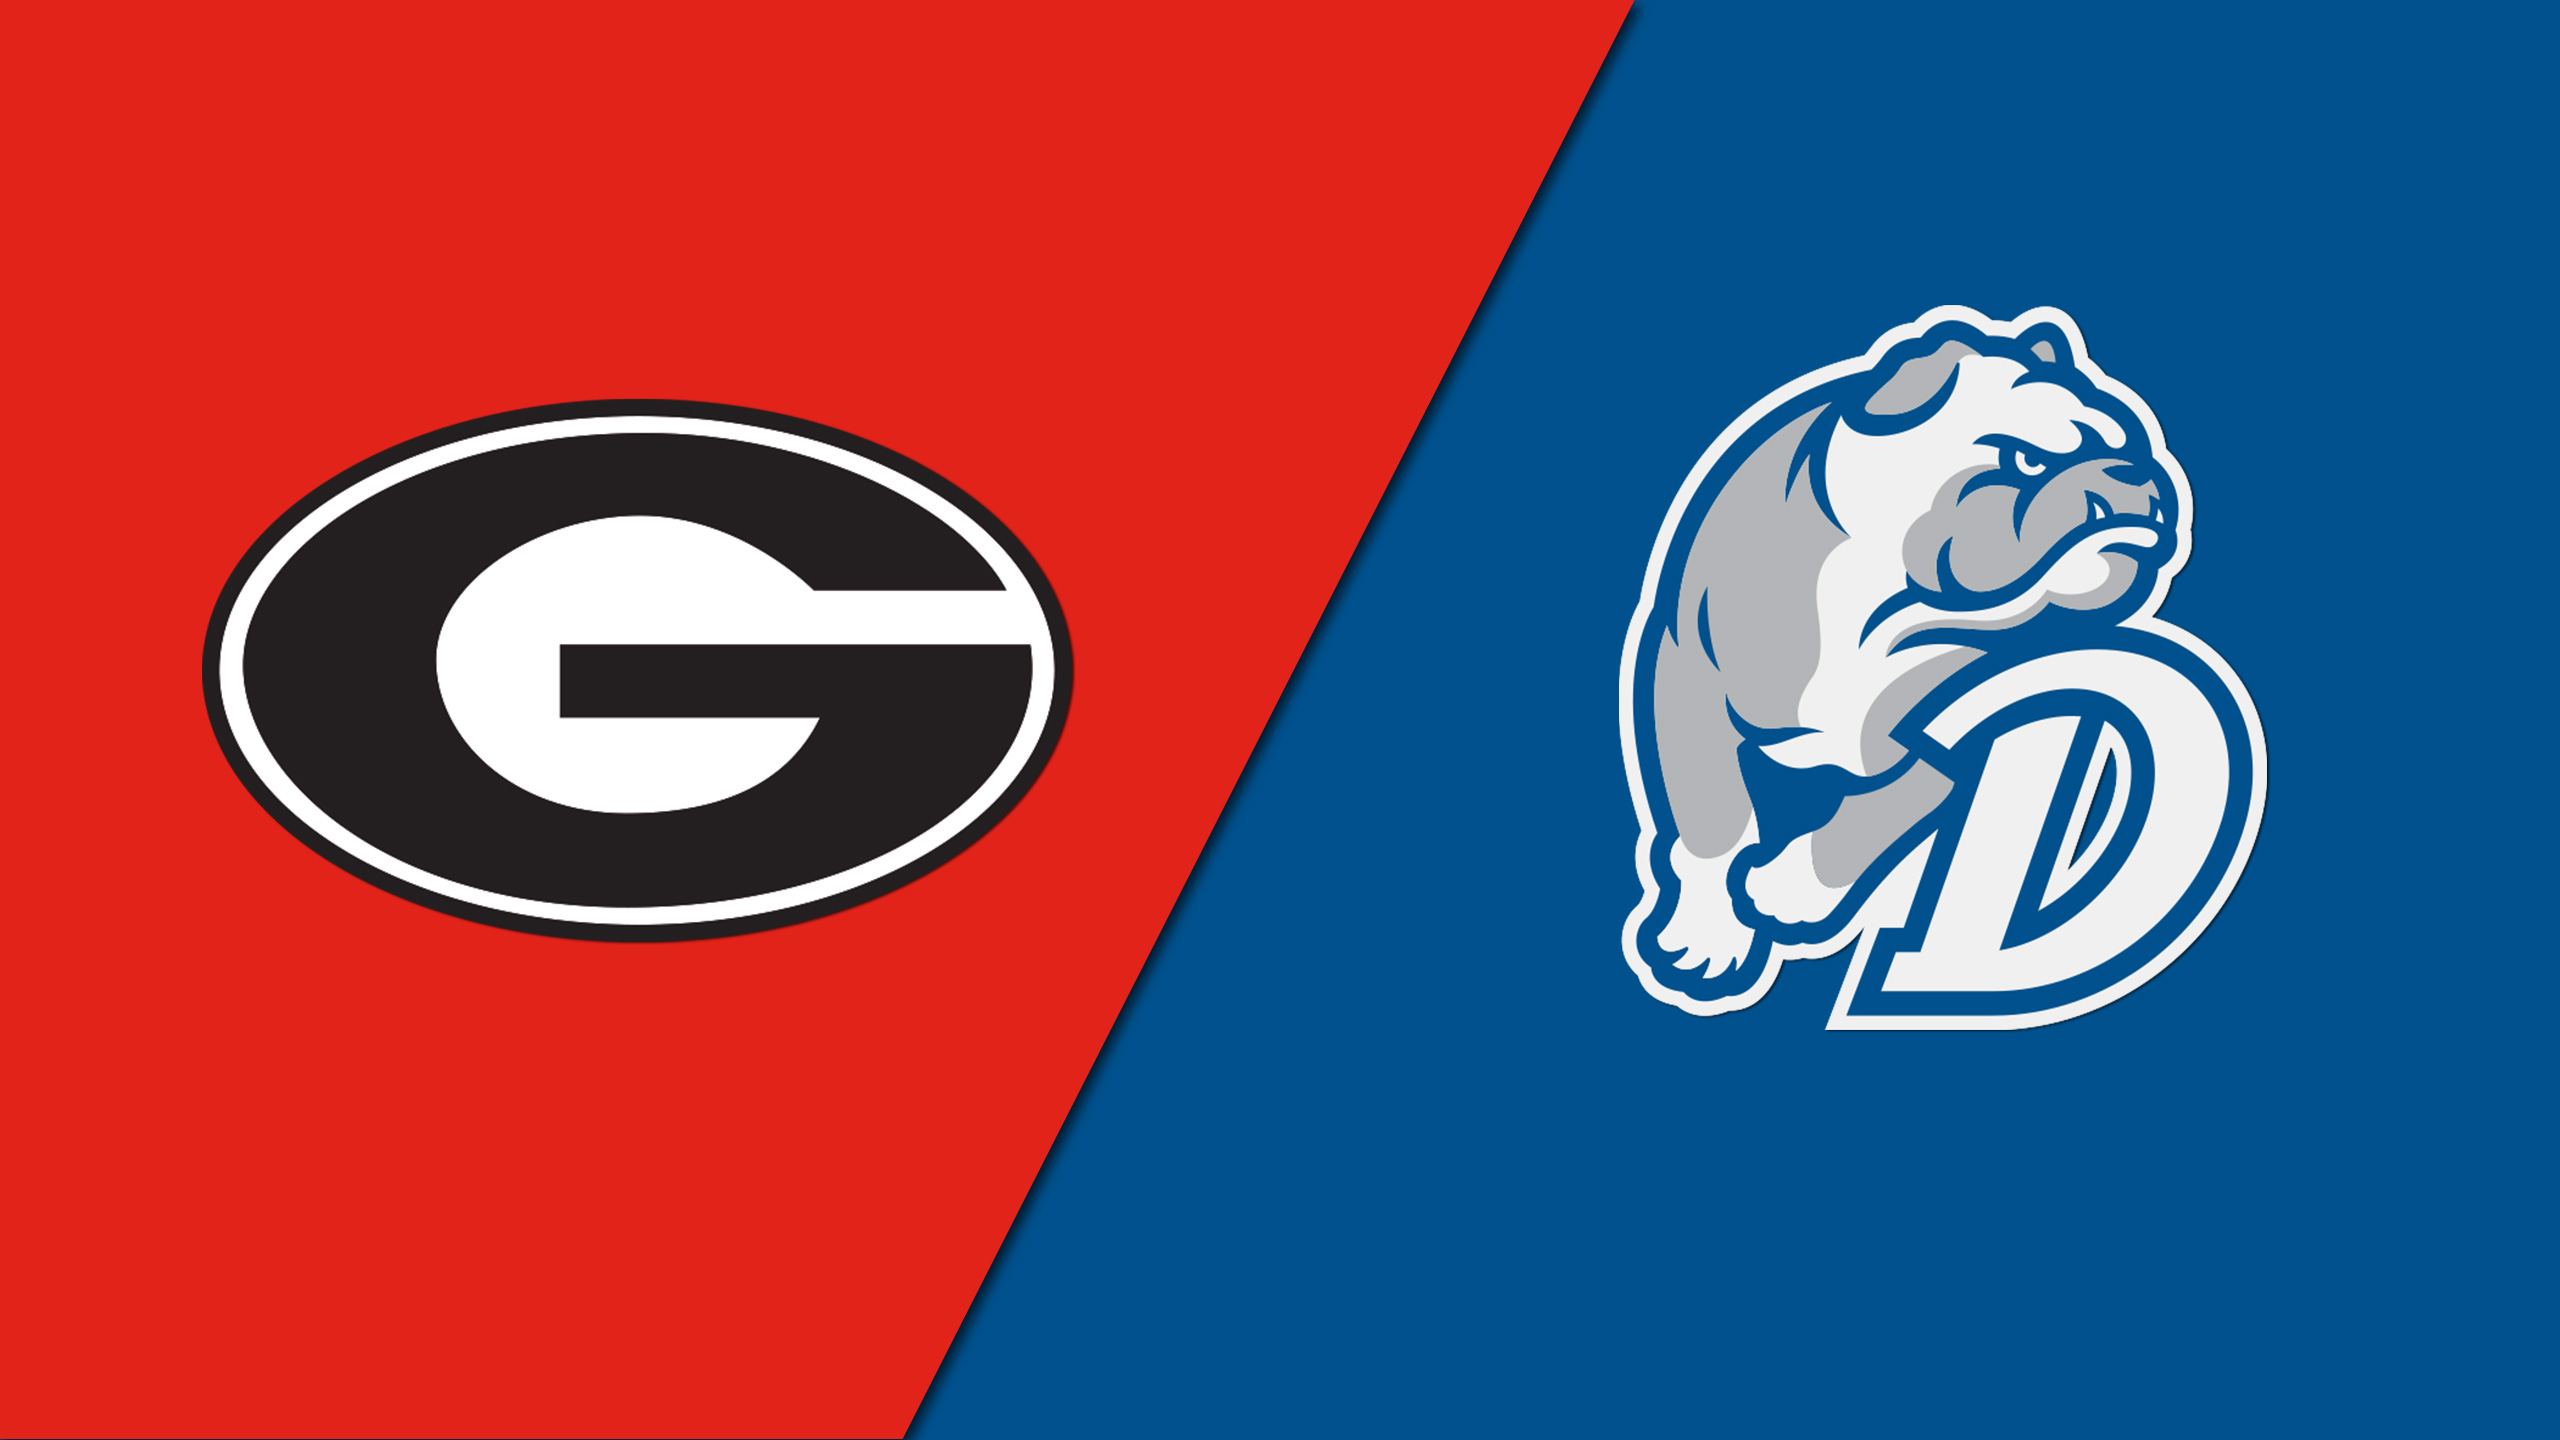 Georgia vs. Drake (Site 6 / Game 5)